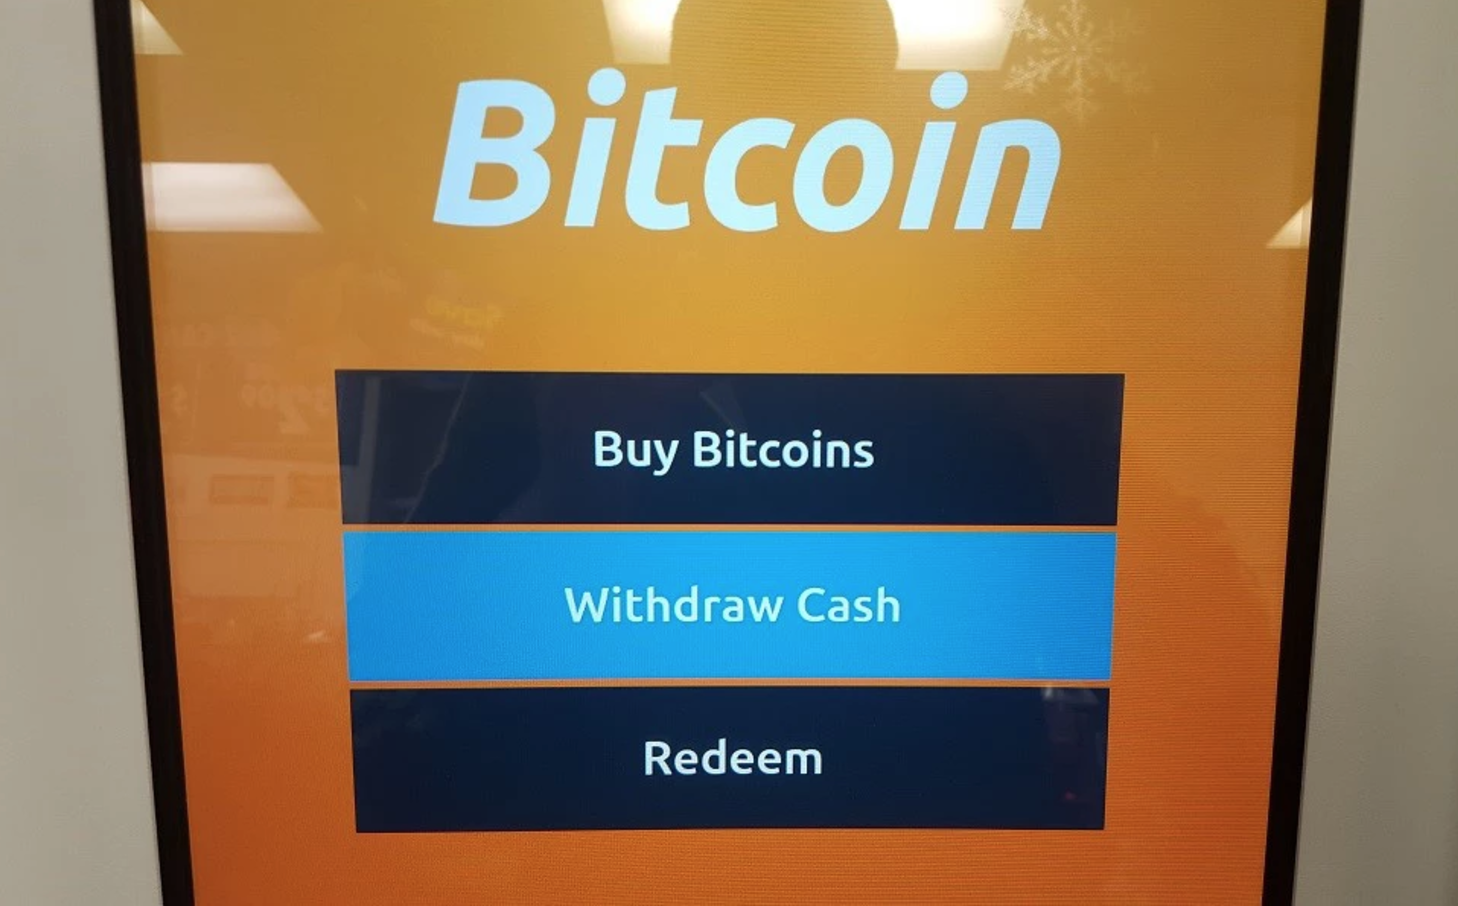 Bitcoin Buy/Sell Here